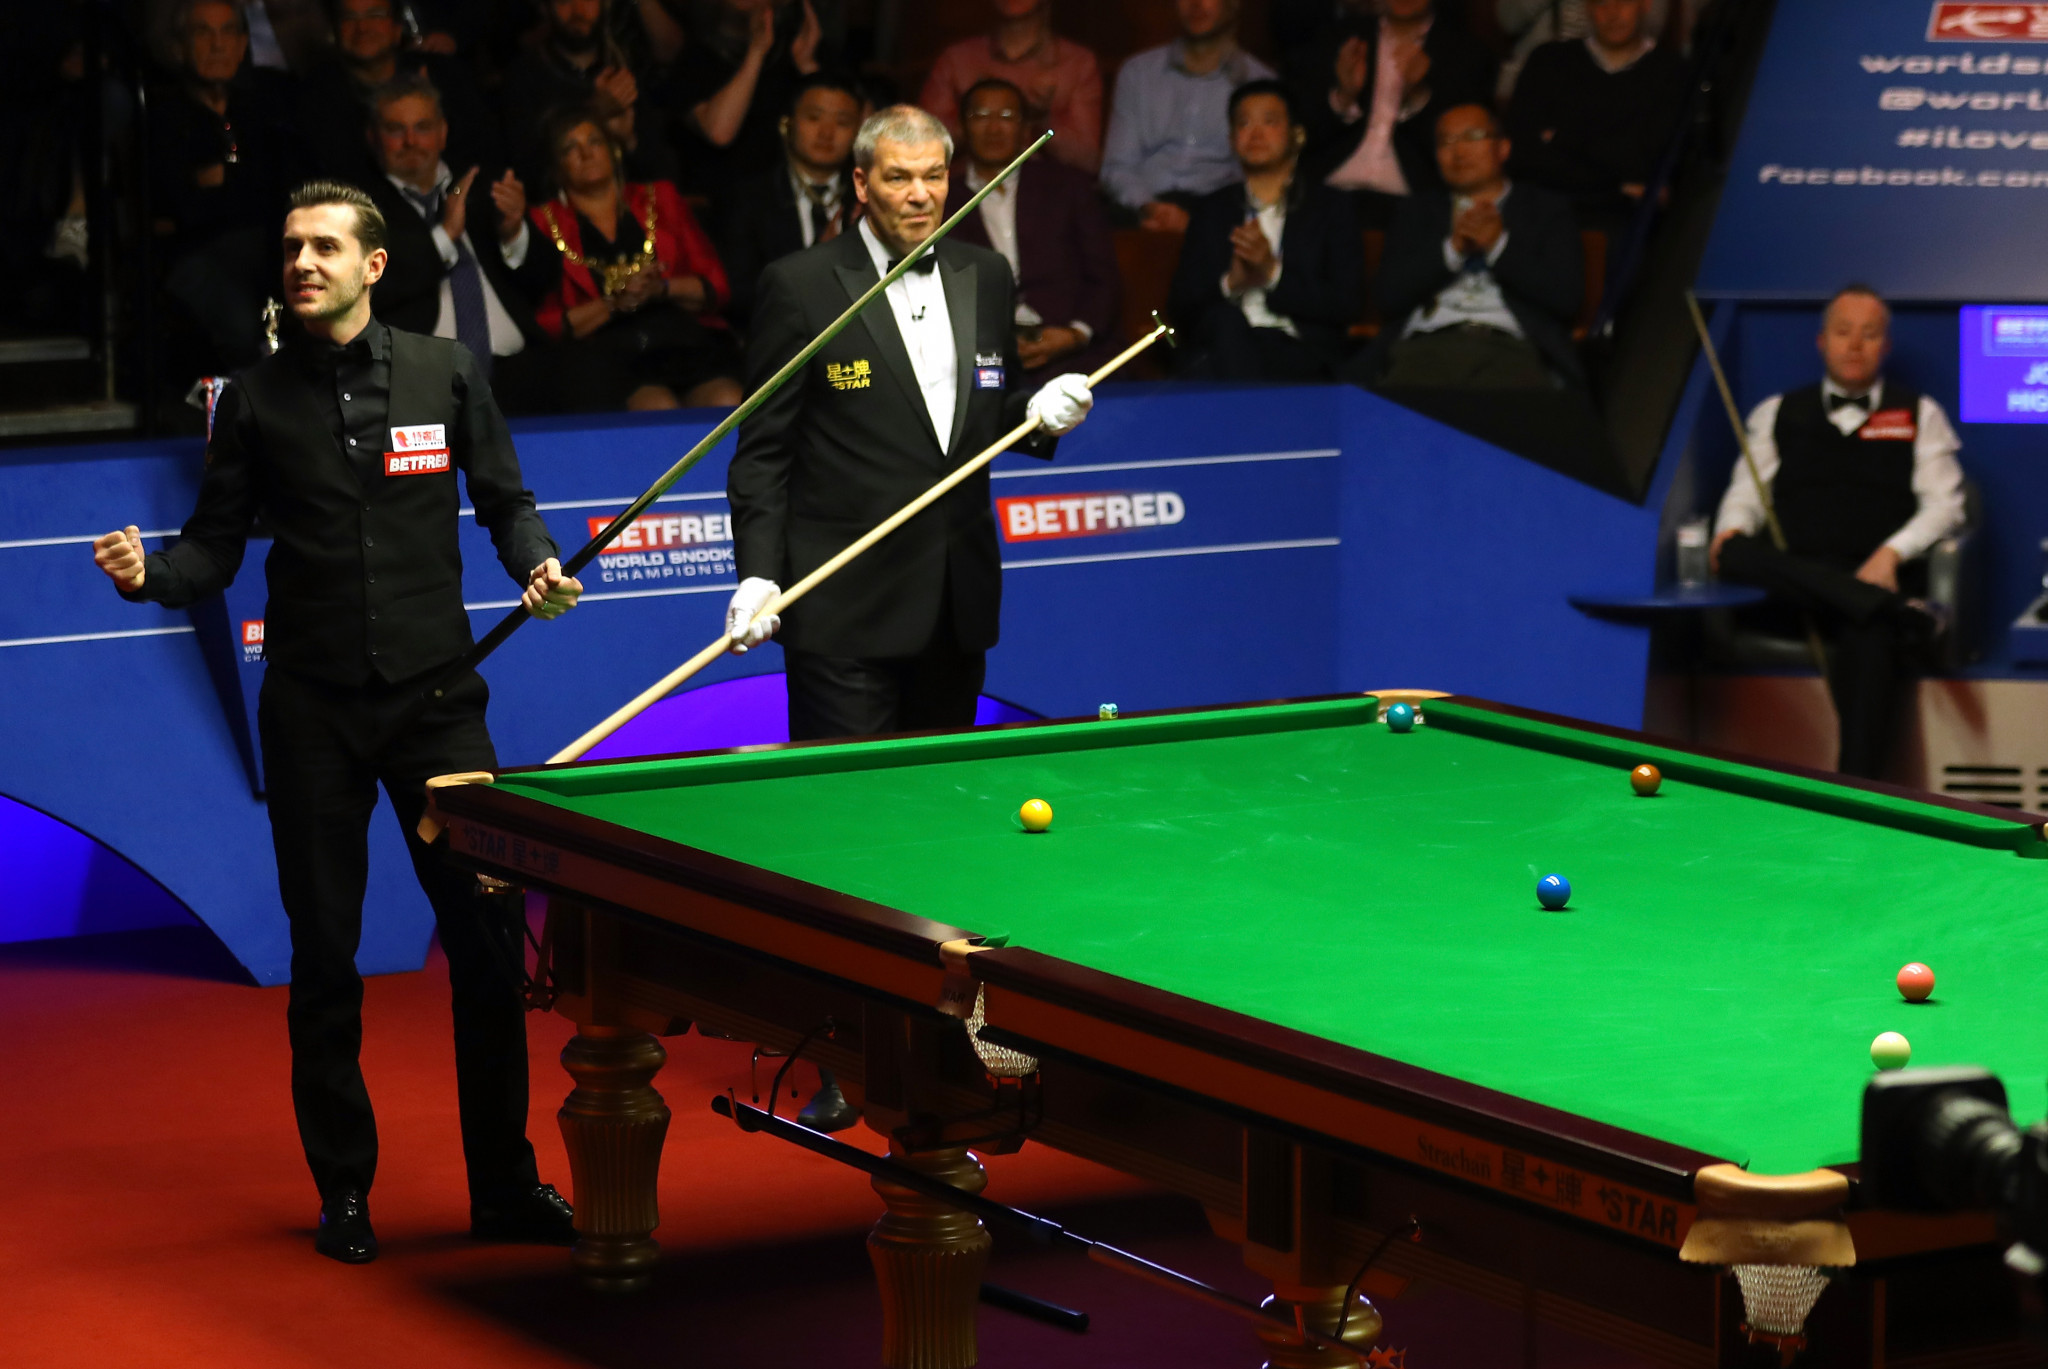 Pity, Amateur snooker tournaments opinion